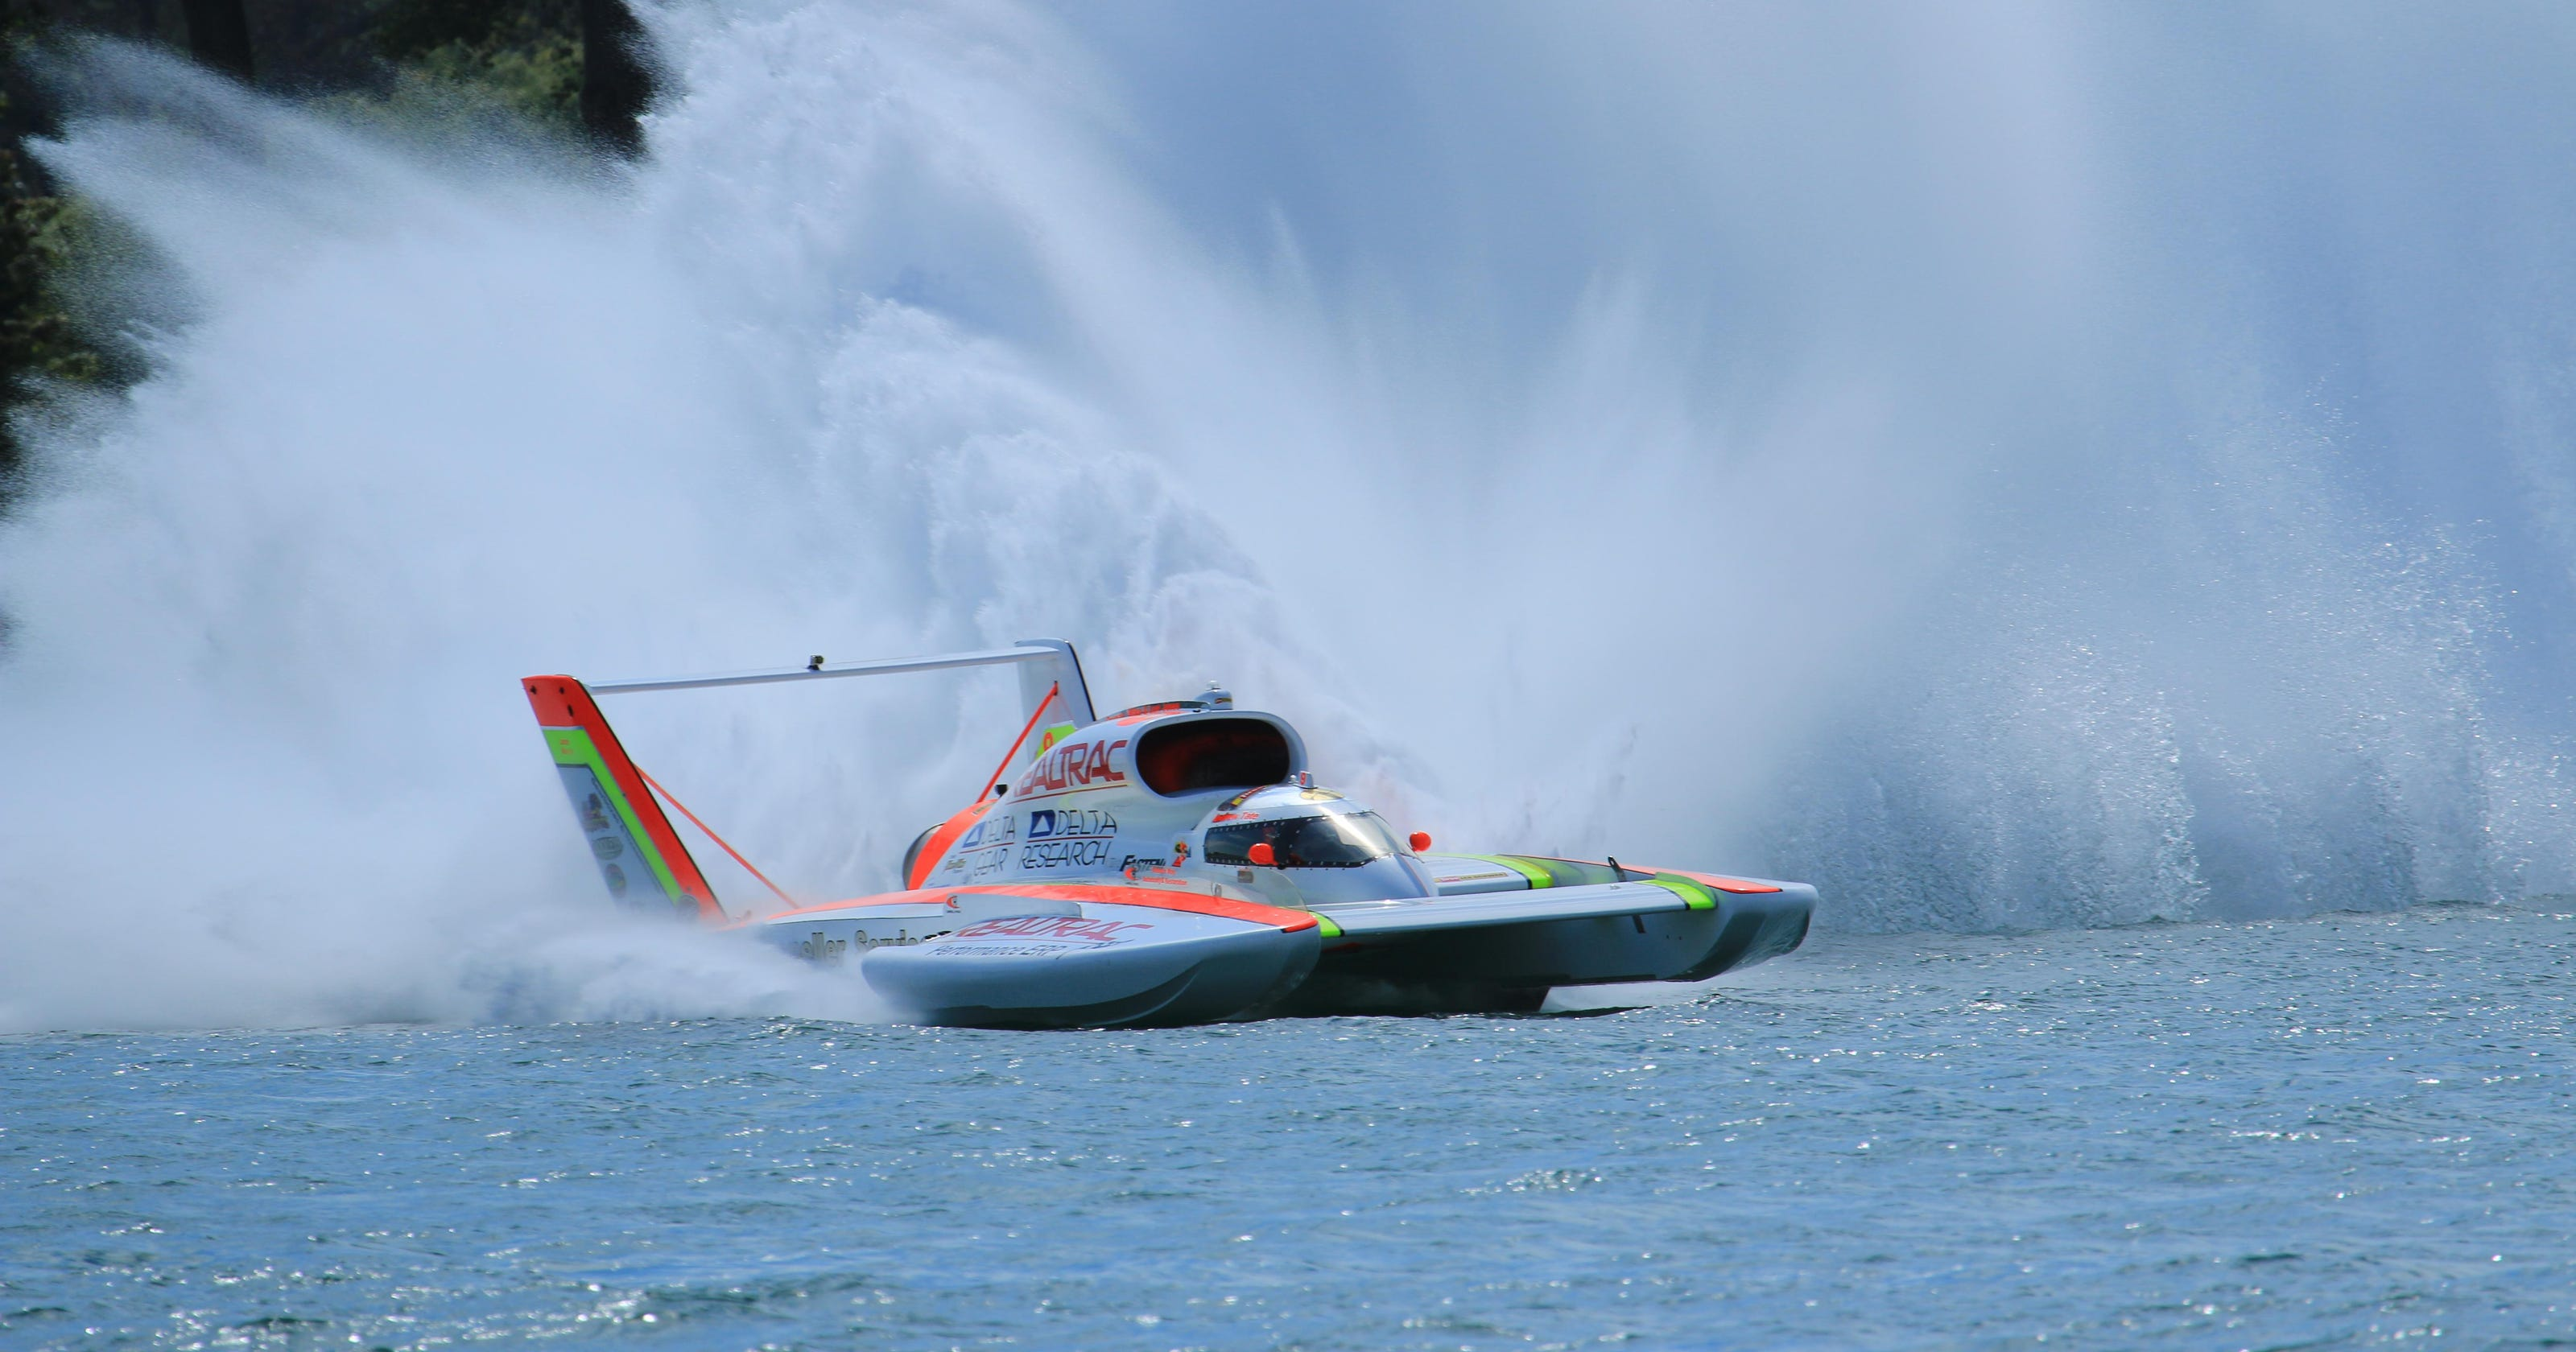 Hydrofest on the Detroit River: 5 things to watch